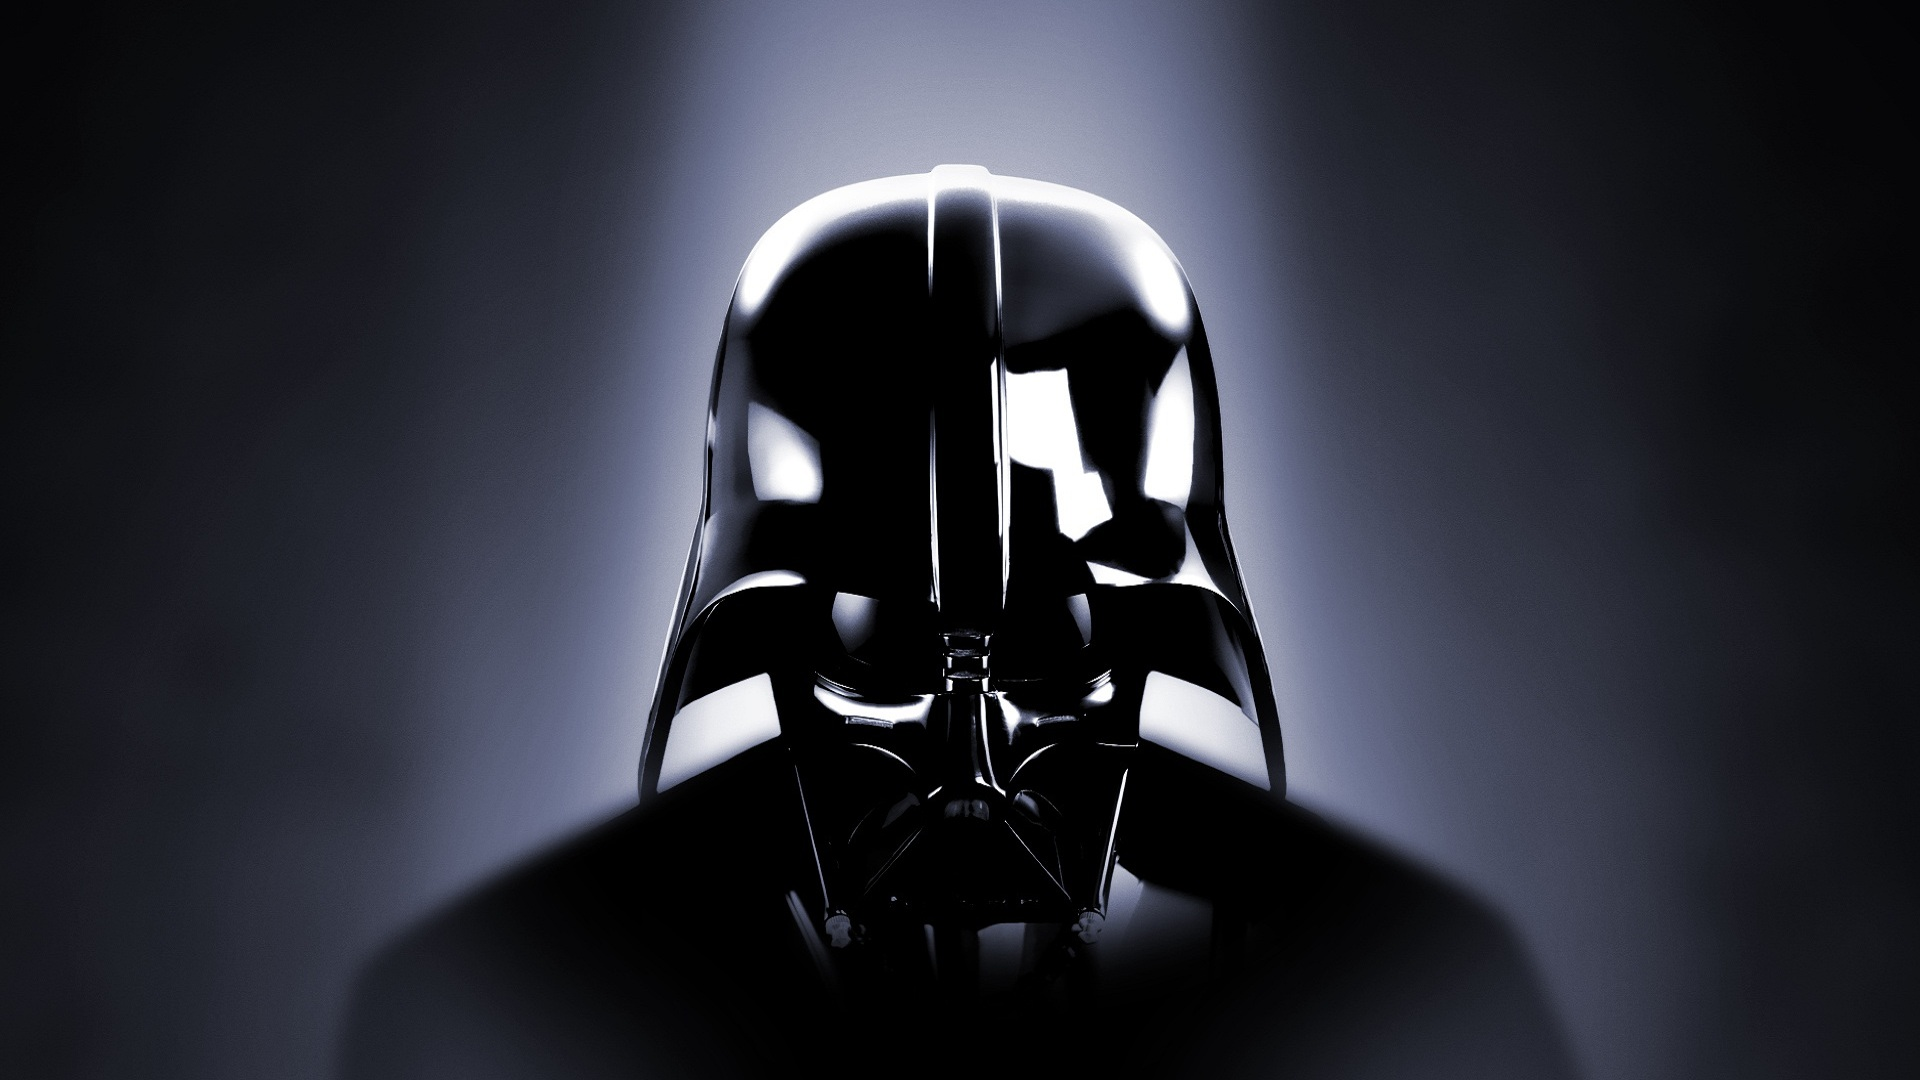 Darth Vader Wallpaper Darth Vader Close Up 1920x1080 Wallpaper Teahub Io